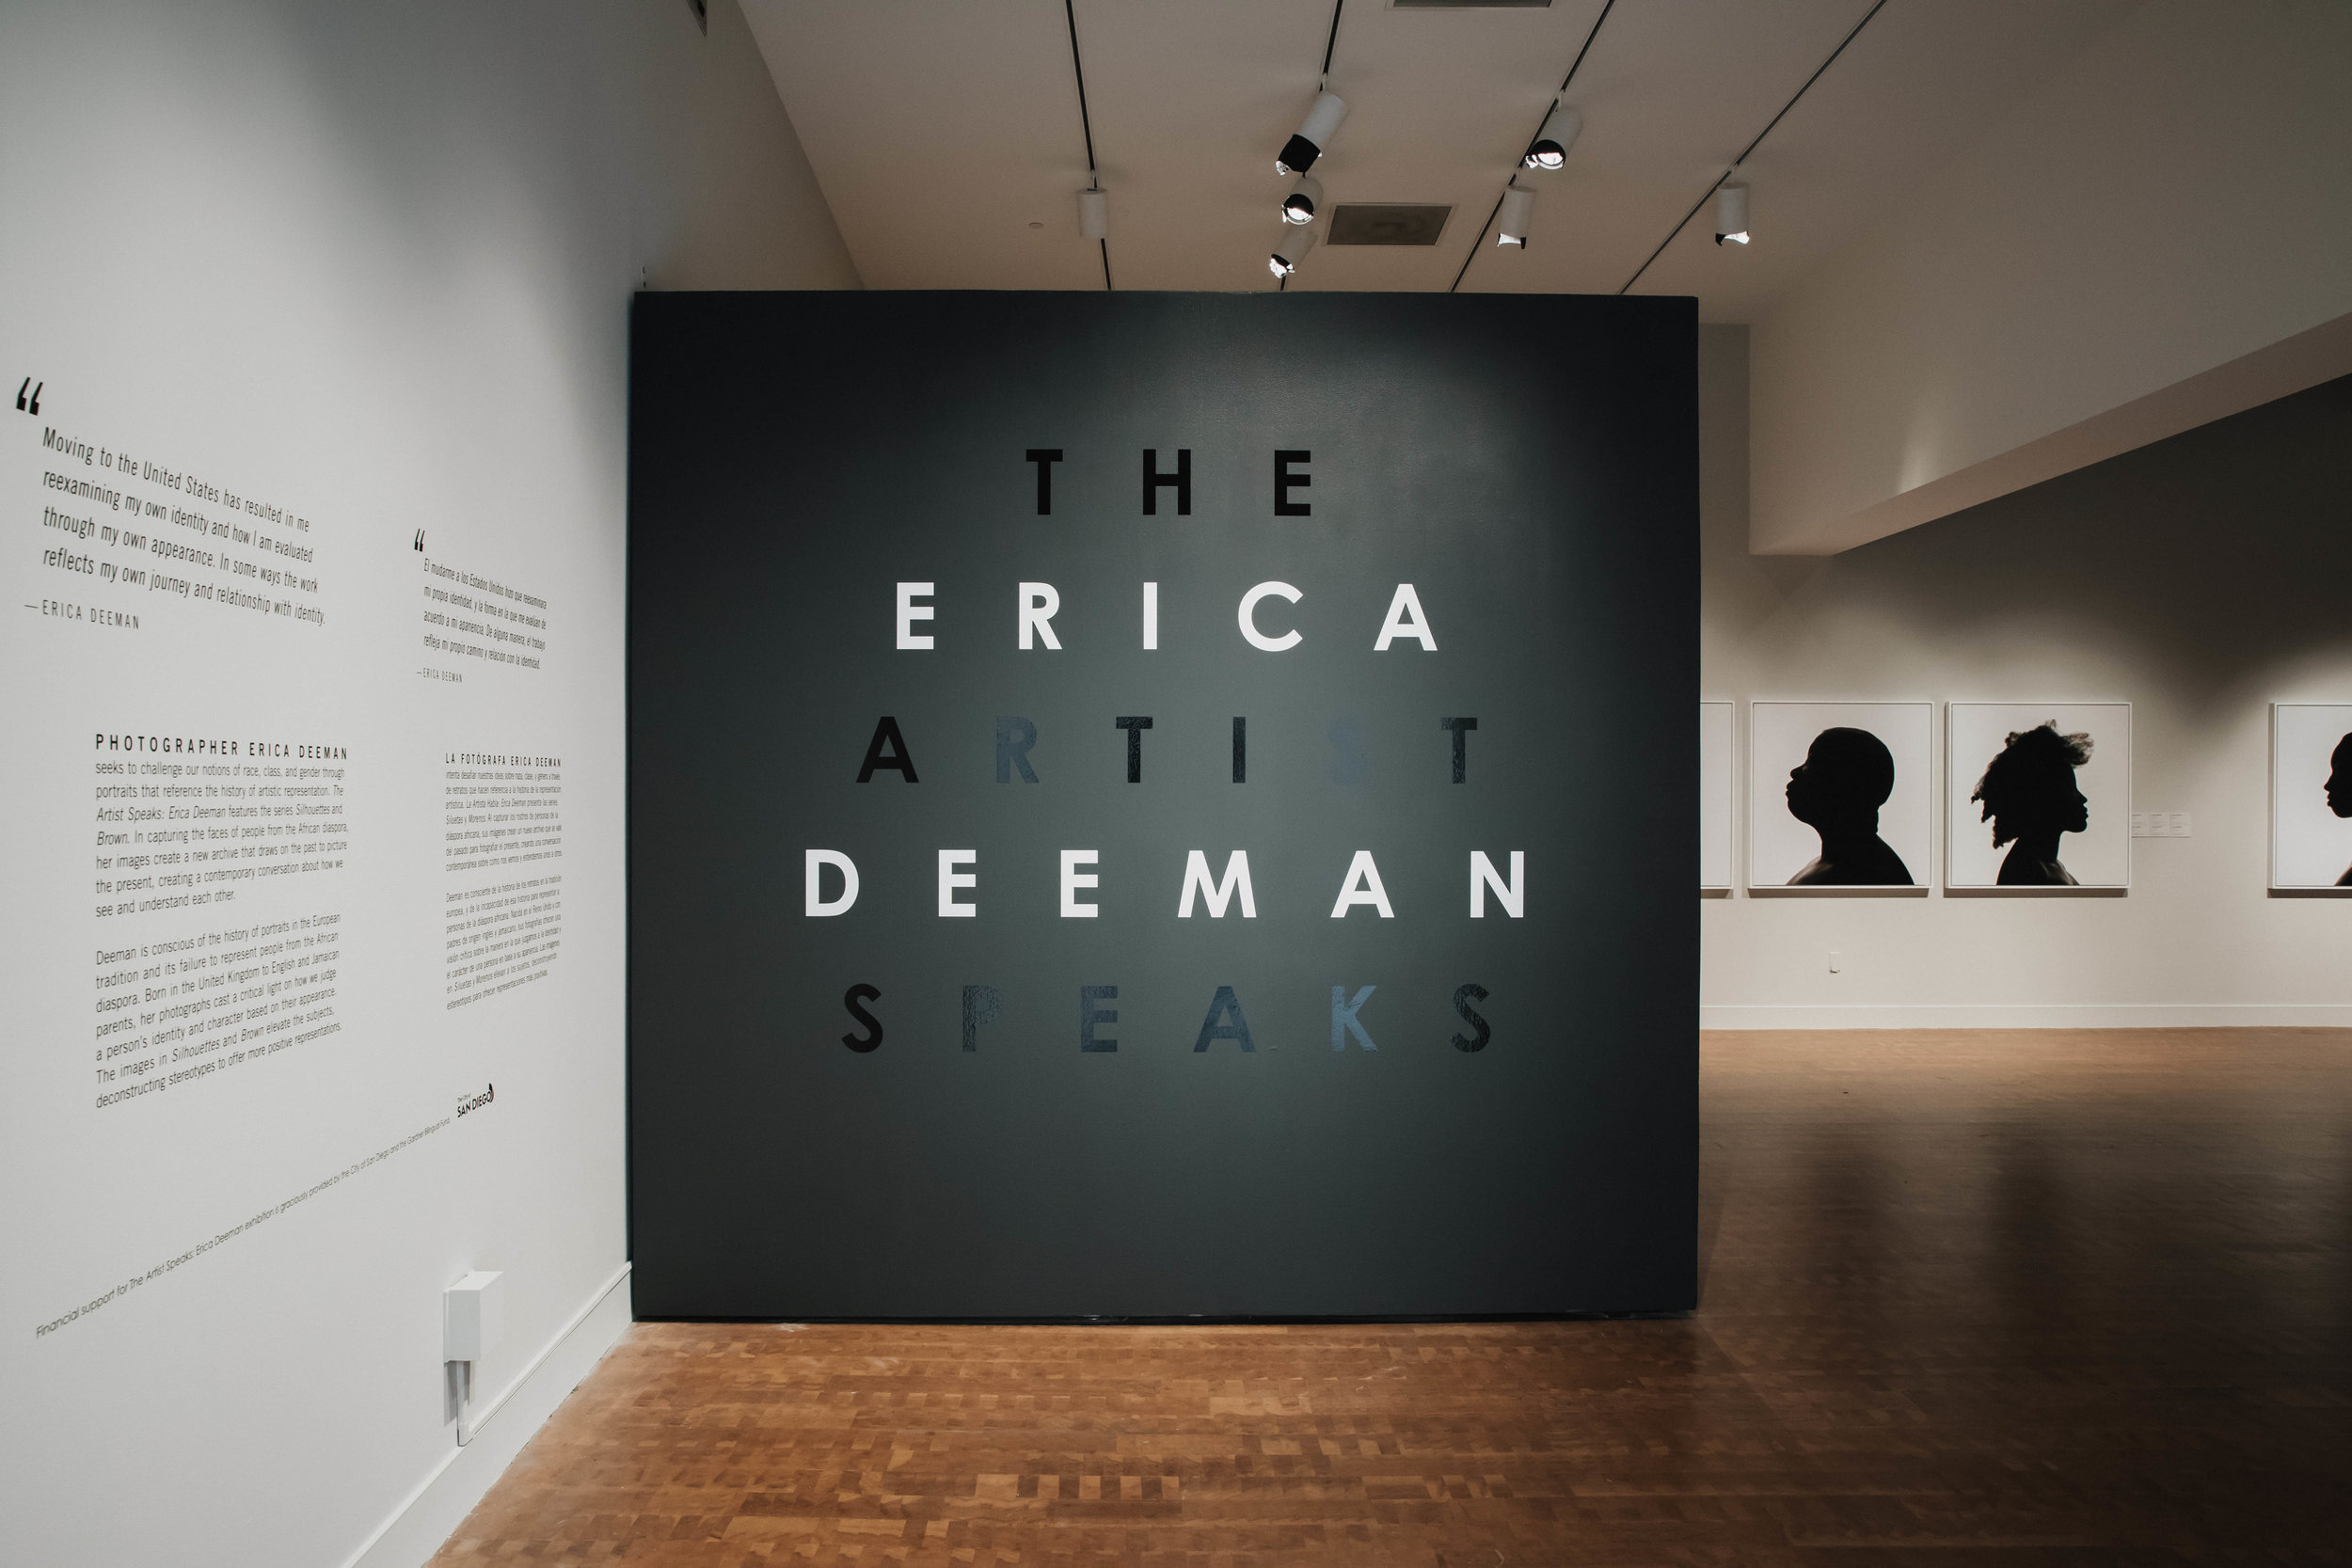 Erica Deeman: The Artist Talks   Museum of Photographic Arts, San Diego 21st April - 16th September 2018